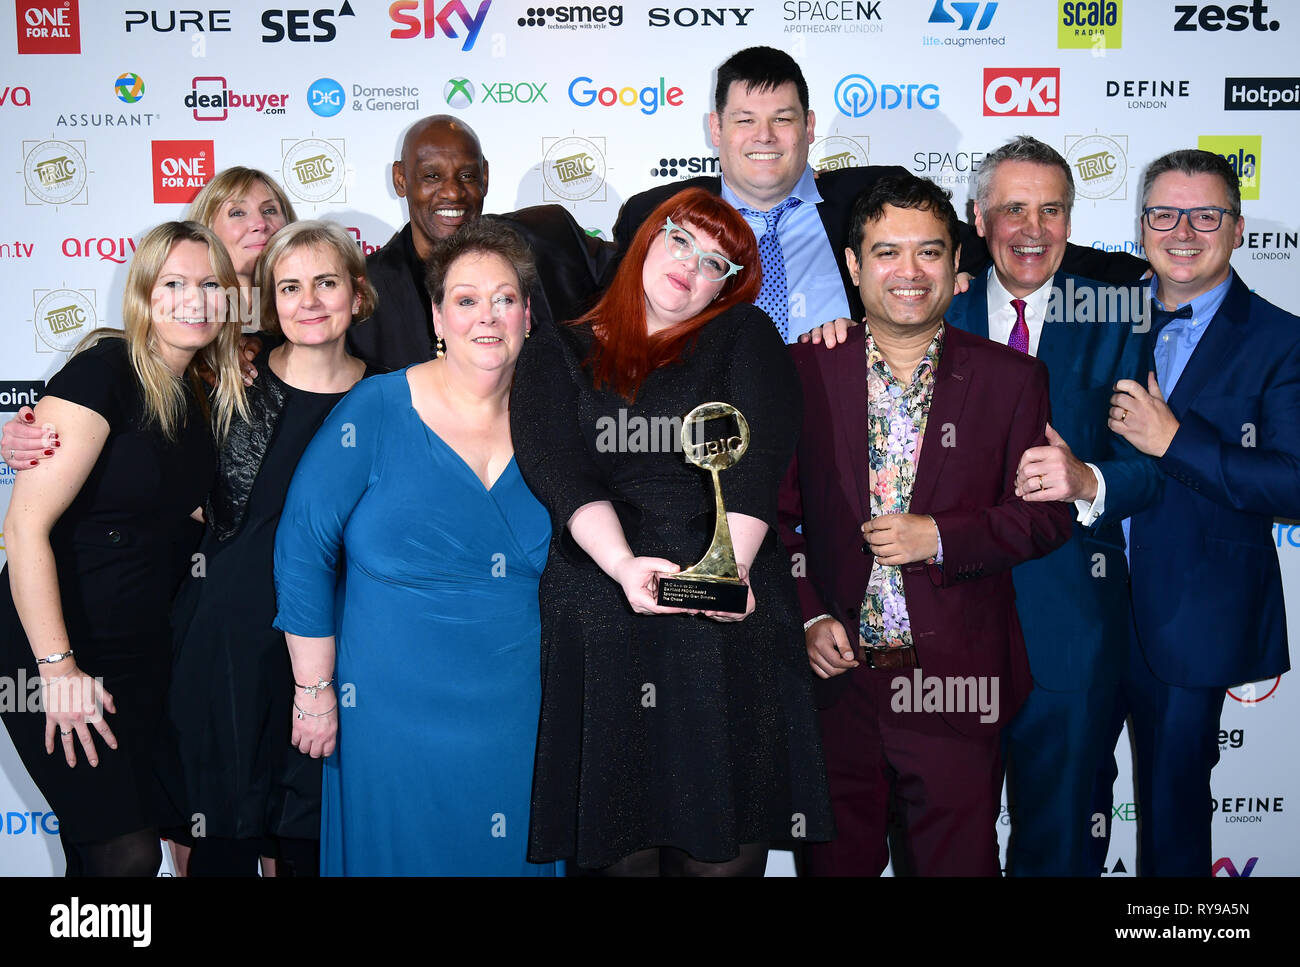 Paul Sinha The Chase High Resolution Stock Photography And Images Alamy